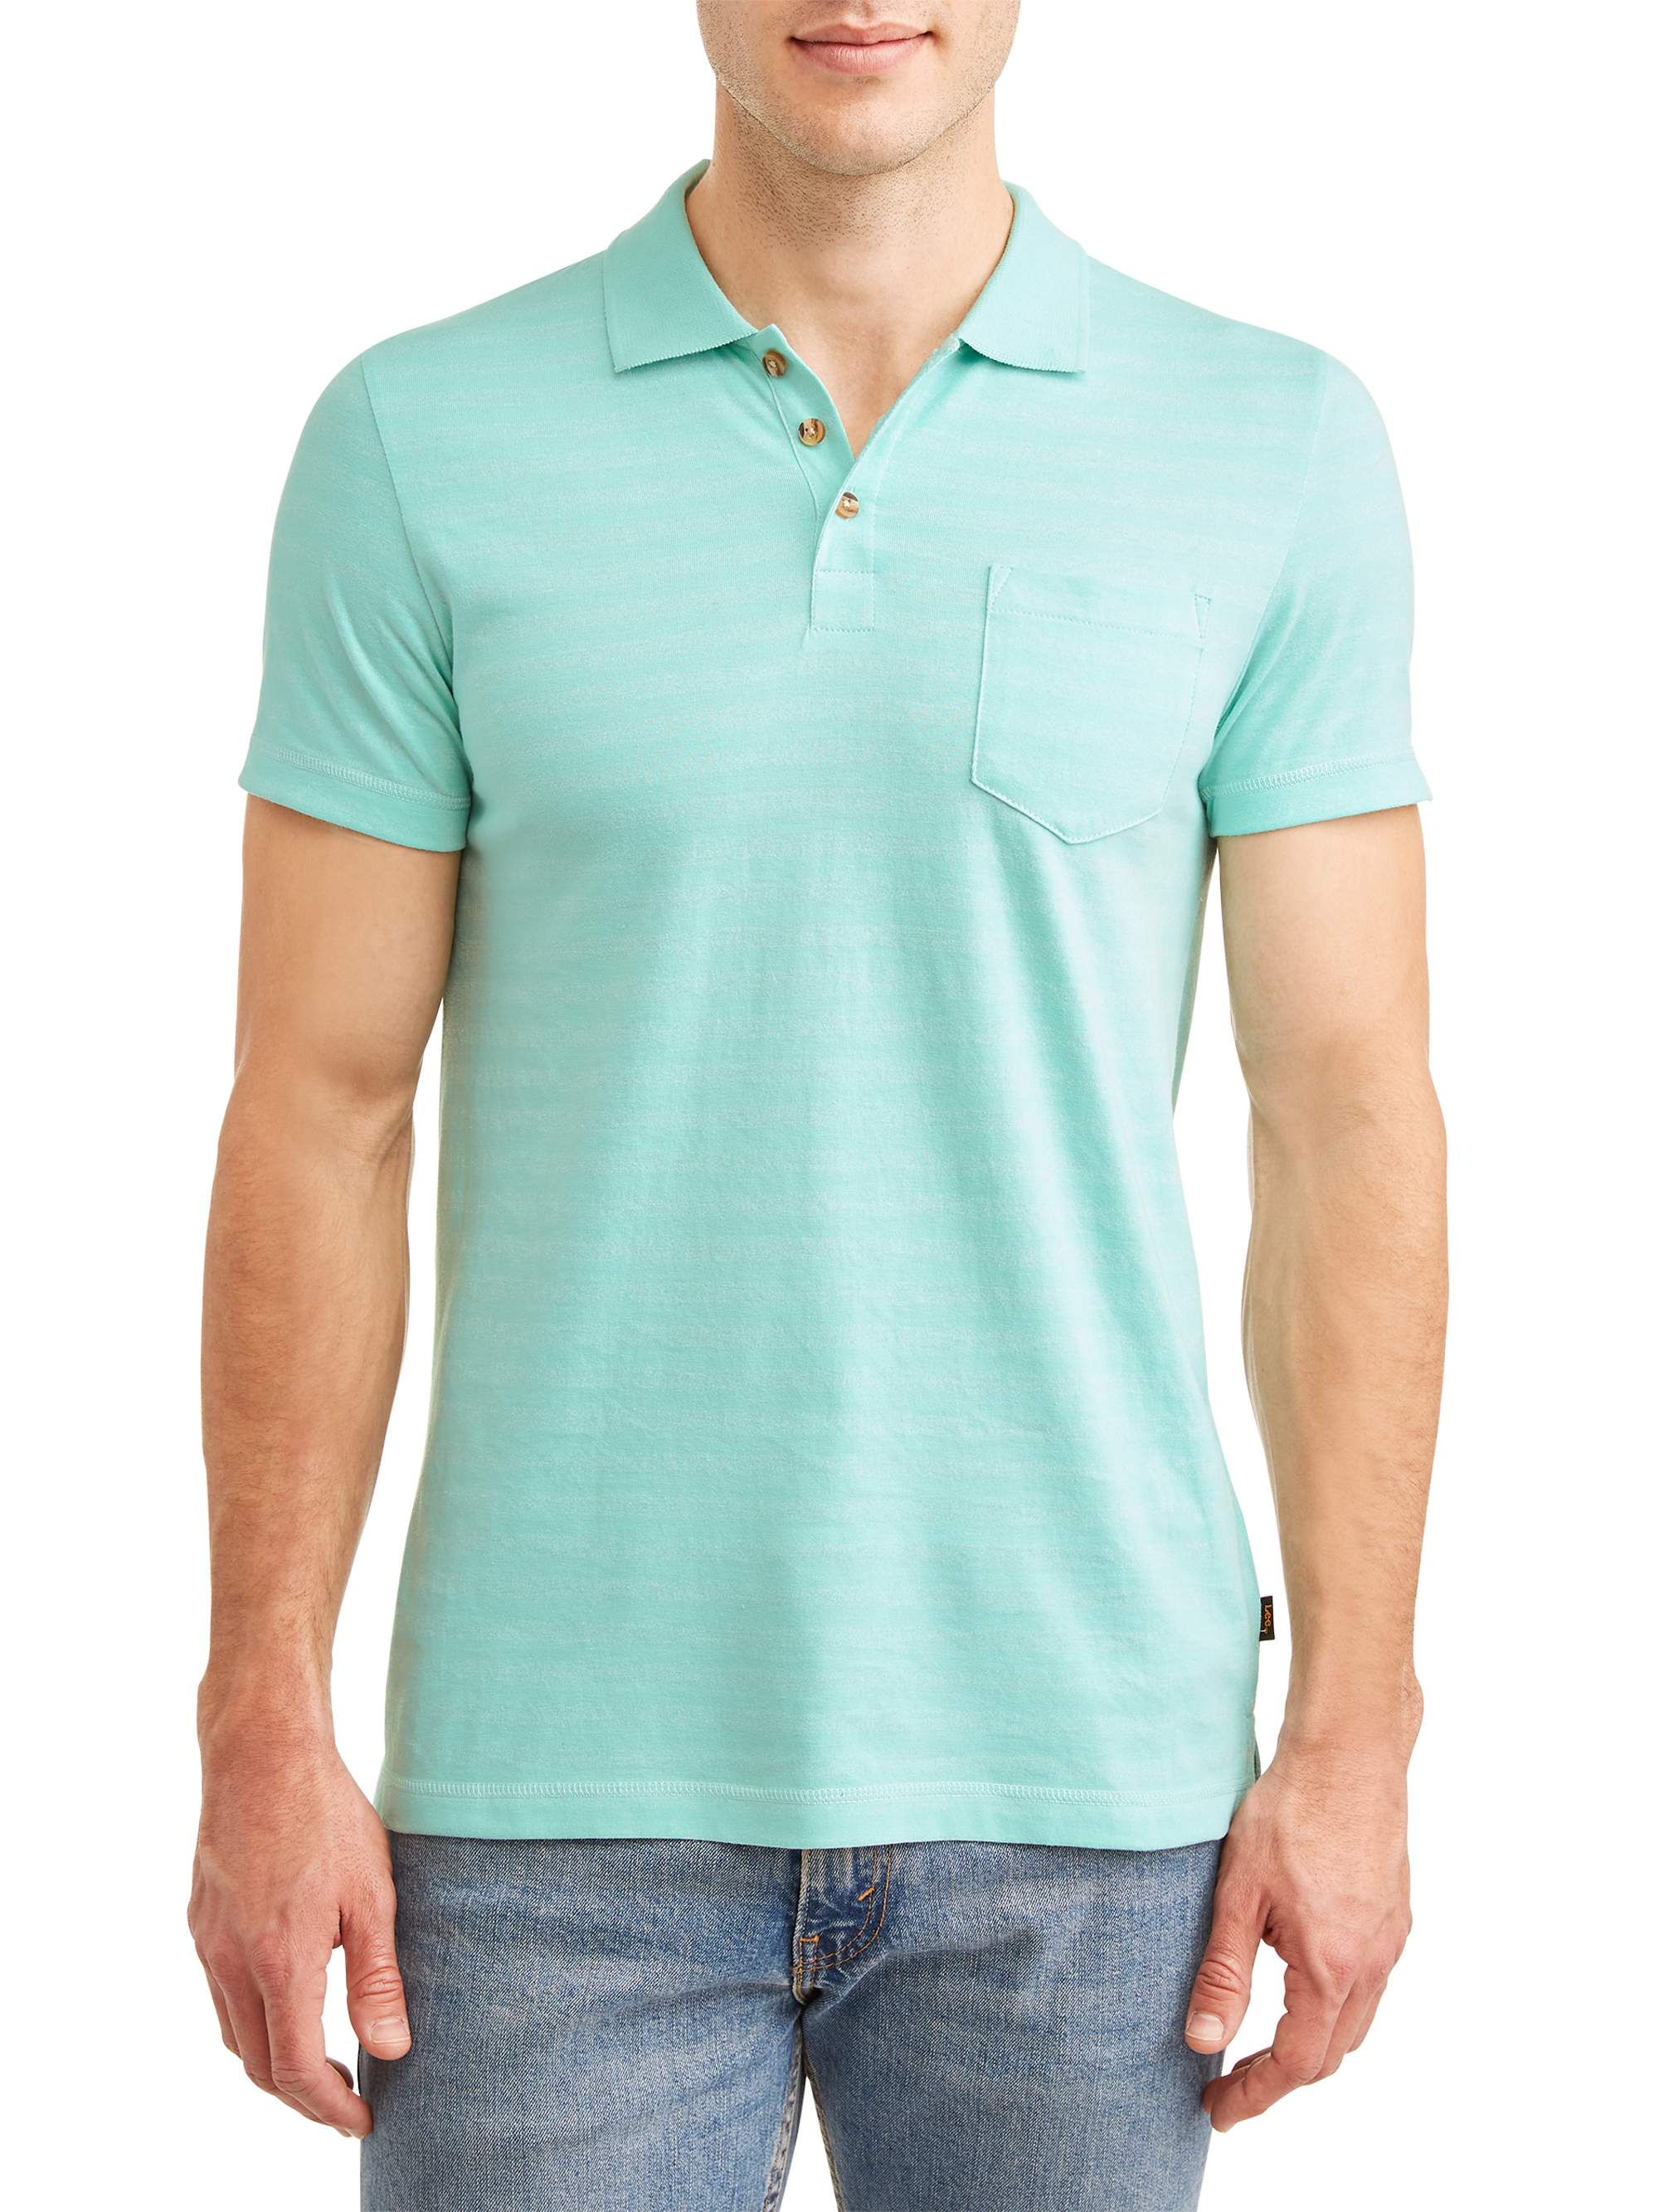 Lee Men's Short Sleeve Striped Polo, Available up to size 2XL